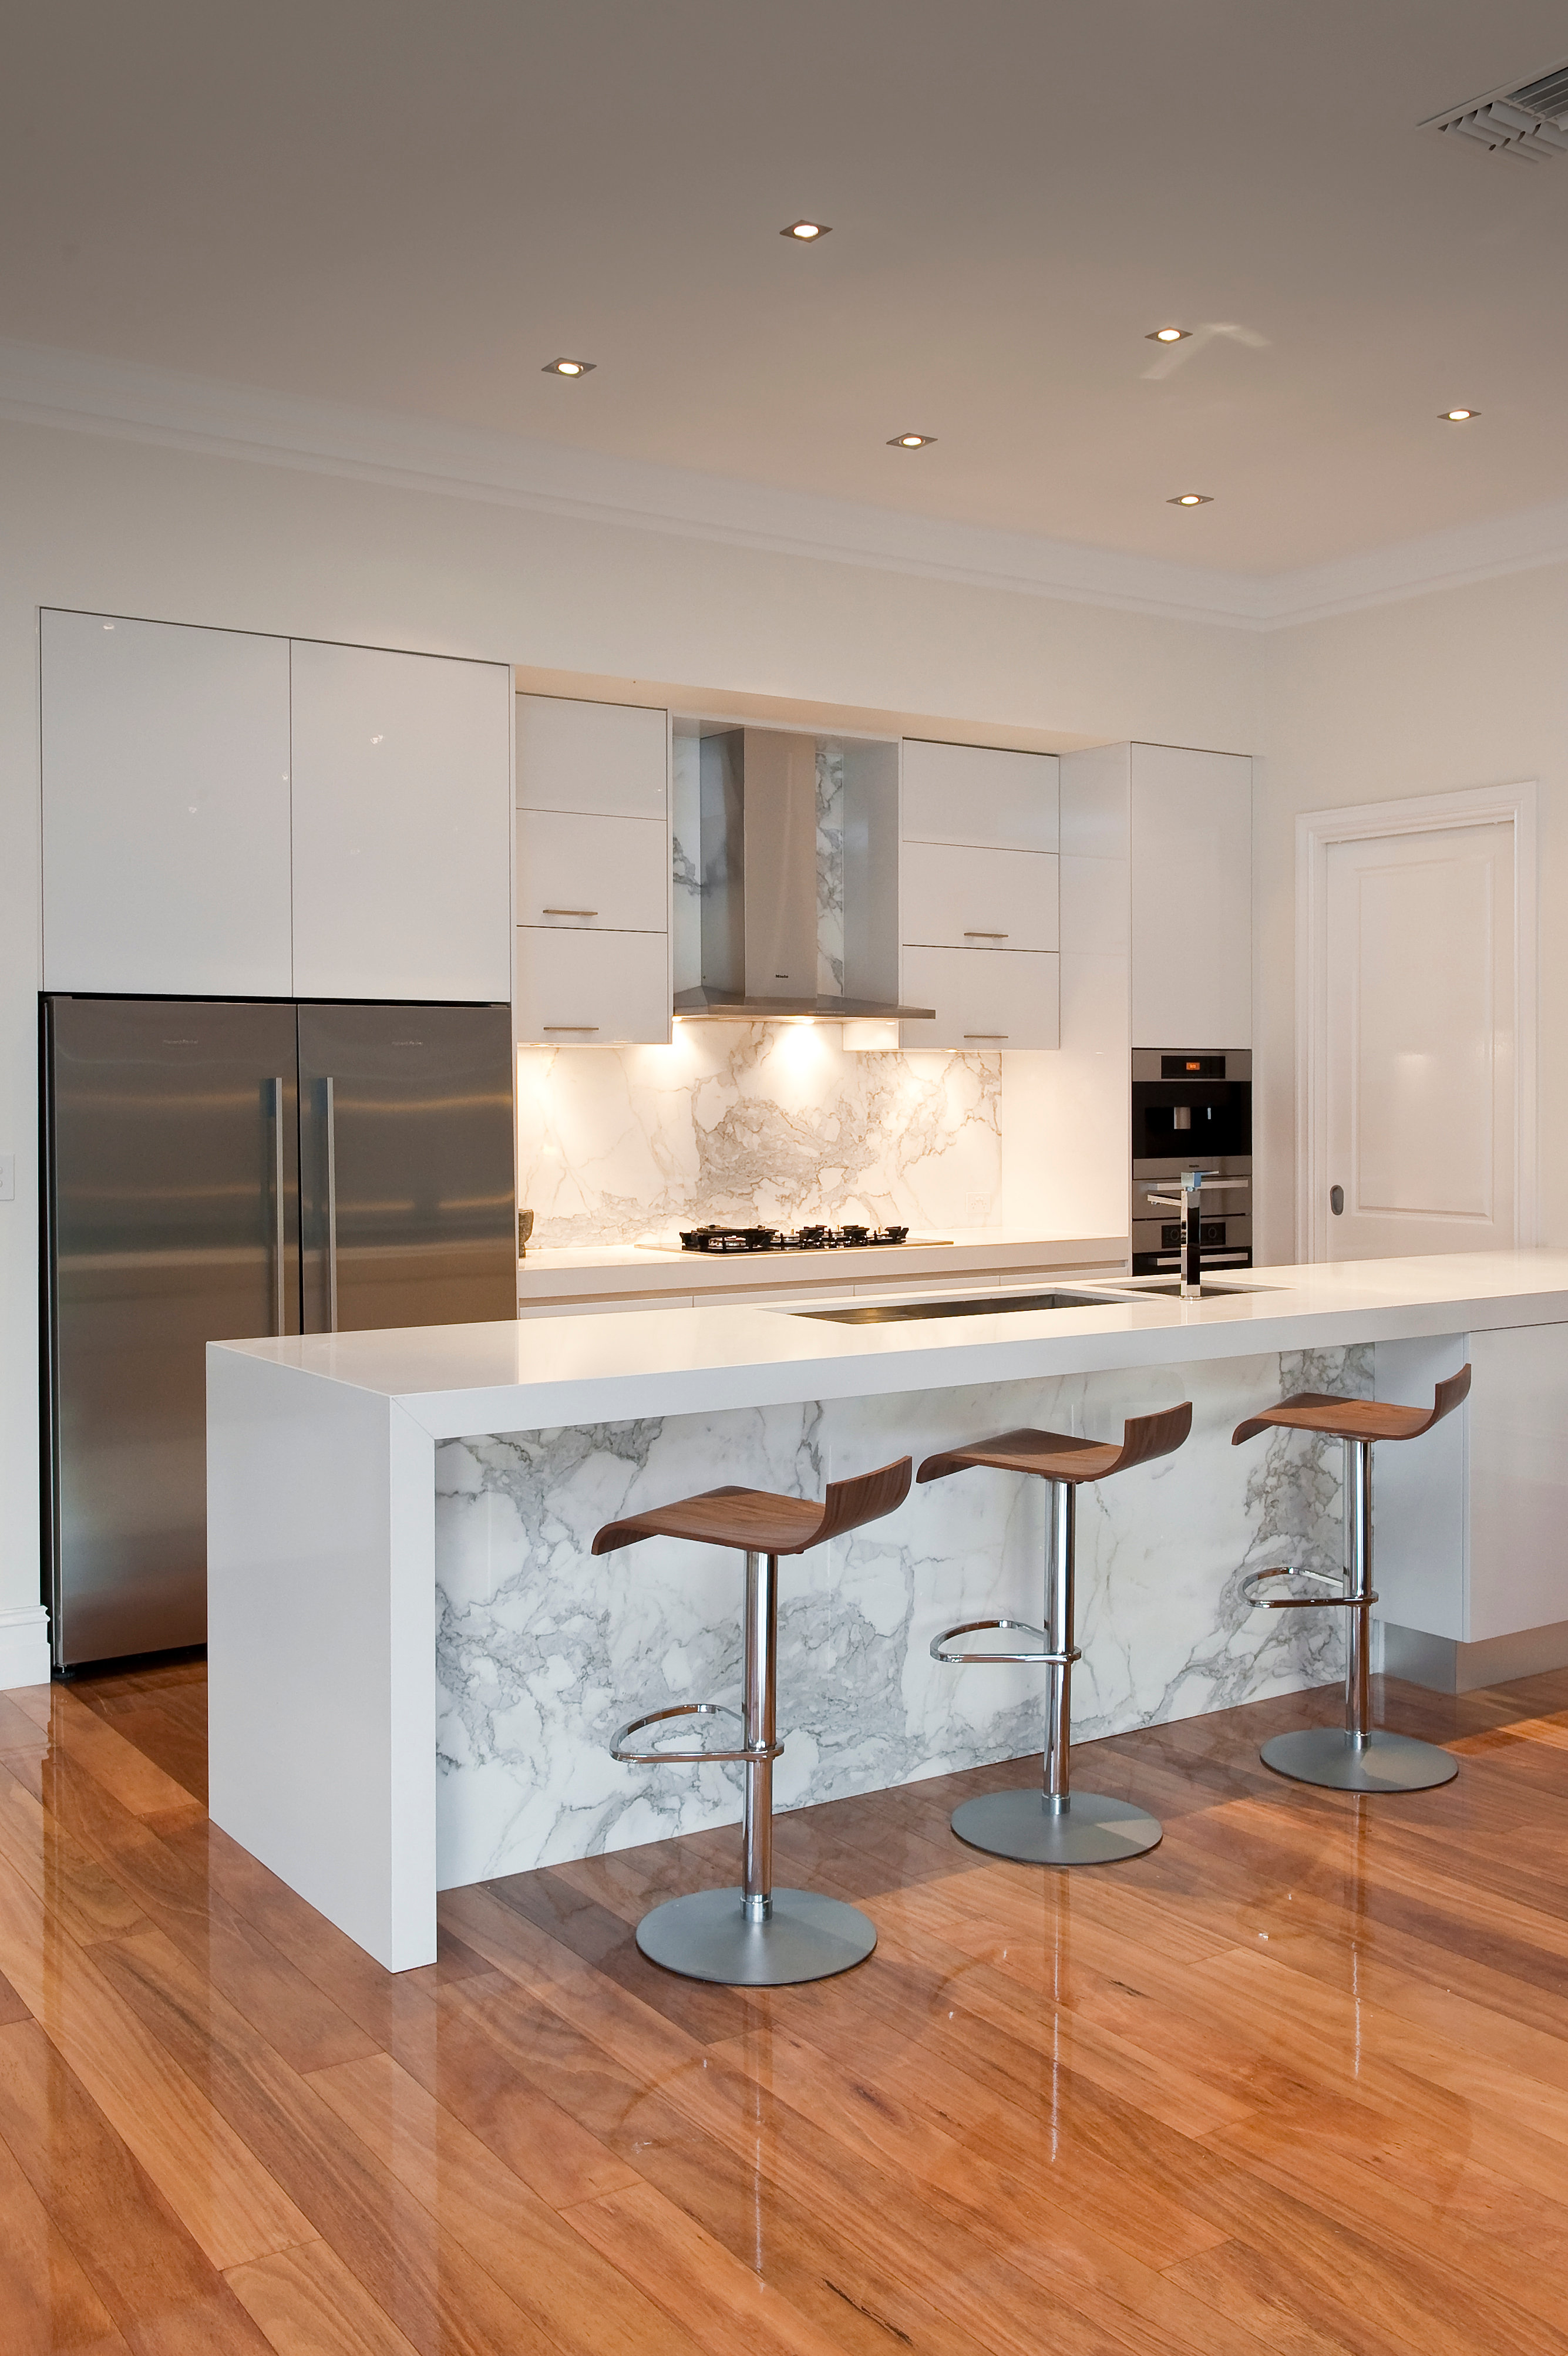 Tma Kitchen Design Tony Warren From Adelaide South Australia